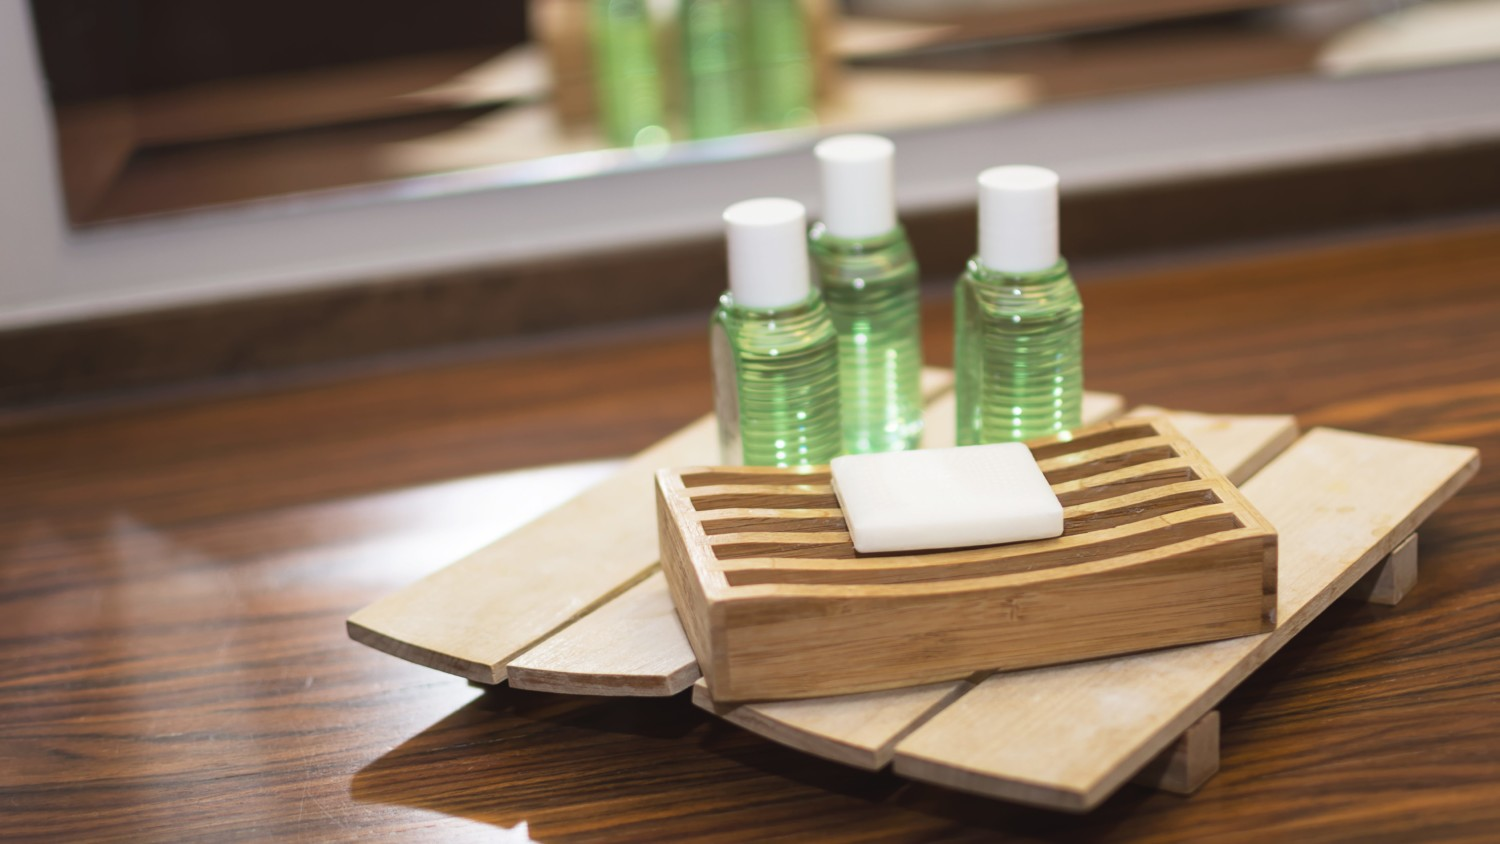 Importance Of Quality Hotel Soap And Hotel Shampoo